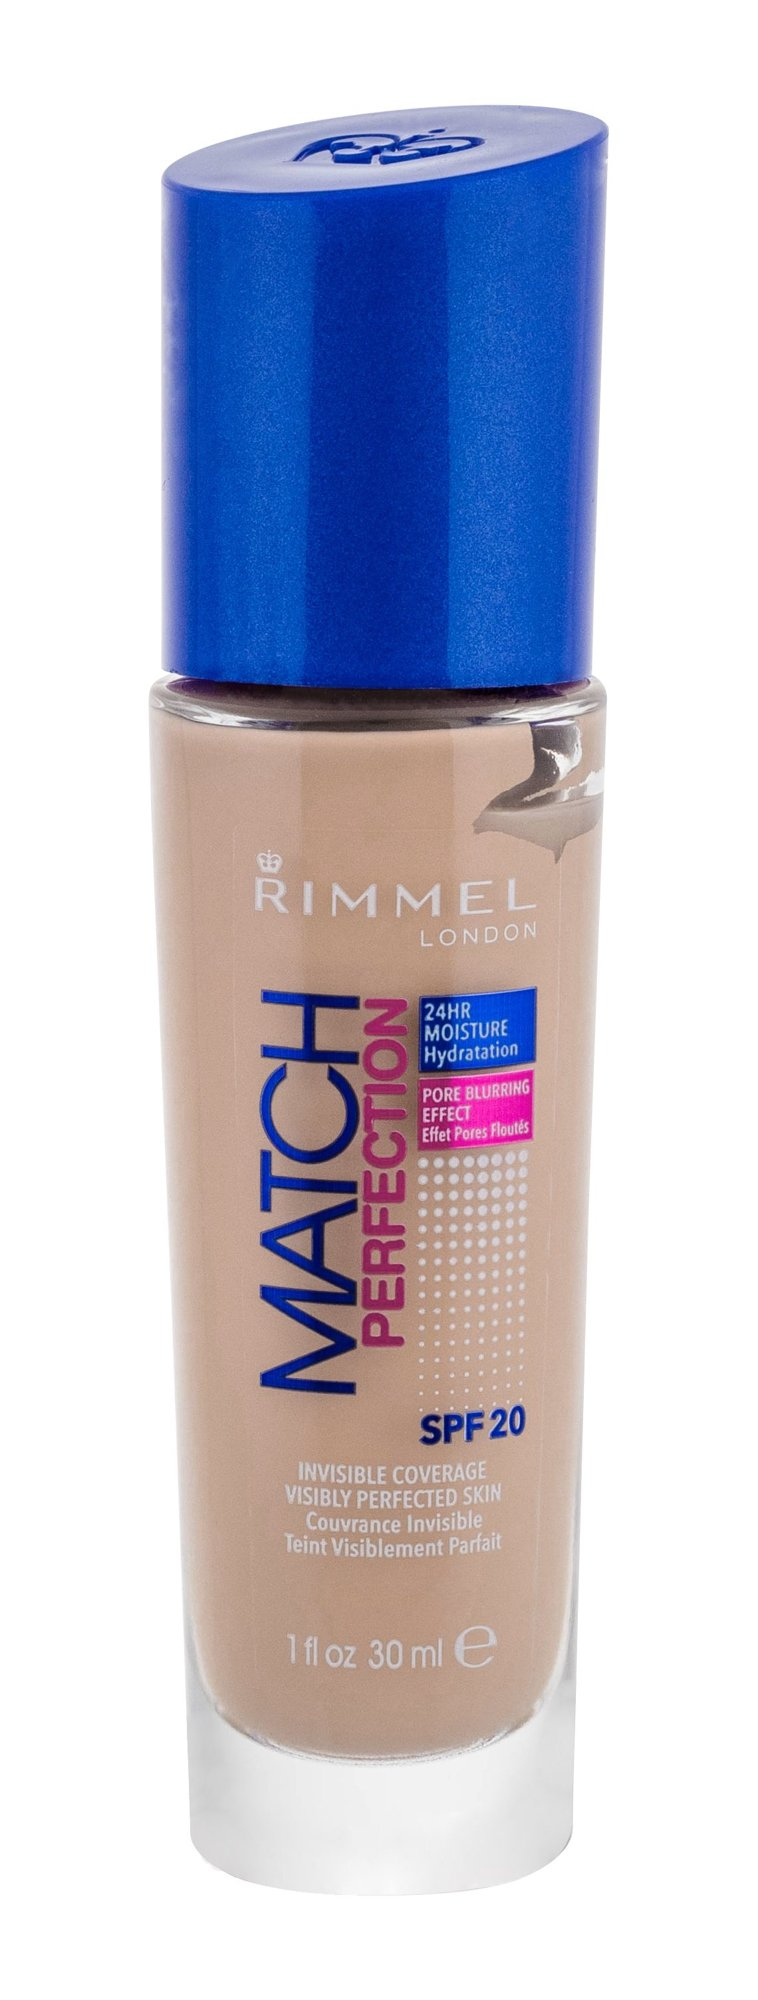 Kreminė pudra Rimmel London Match Perfection